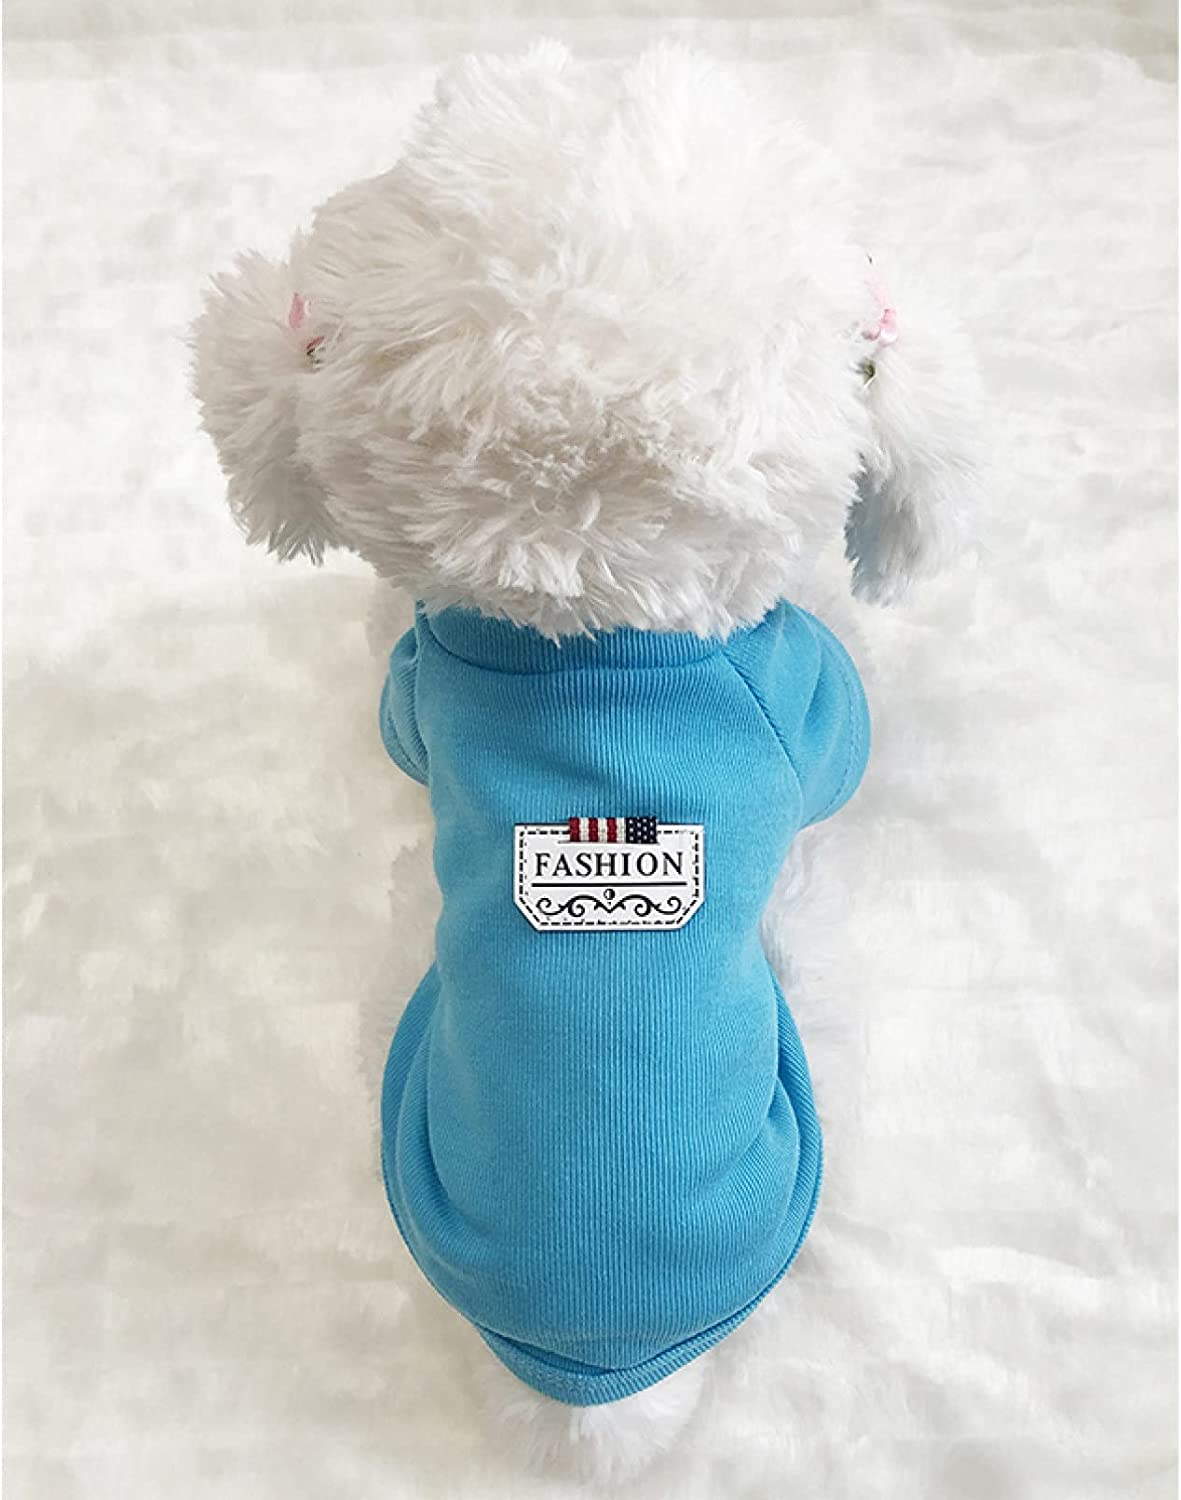 MDKAZ Clothes for Pets Spring Dogs Regular store Fresno Mall Dog Pet Bla Small